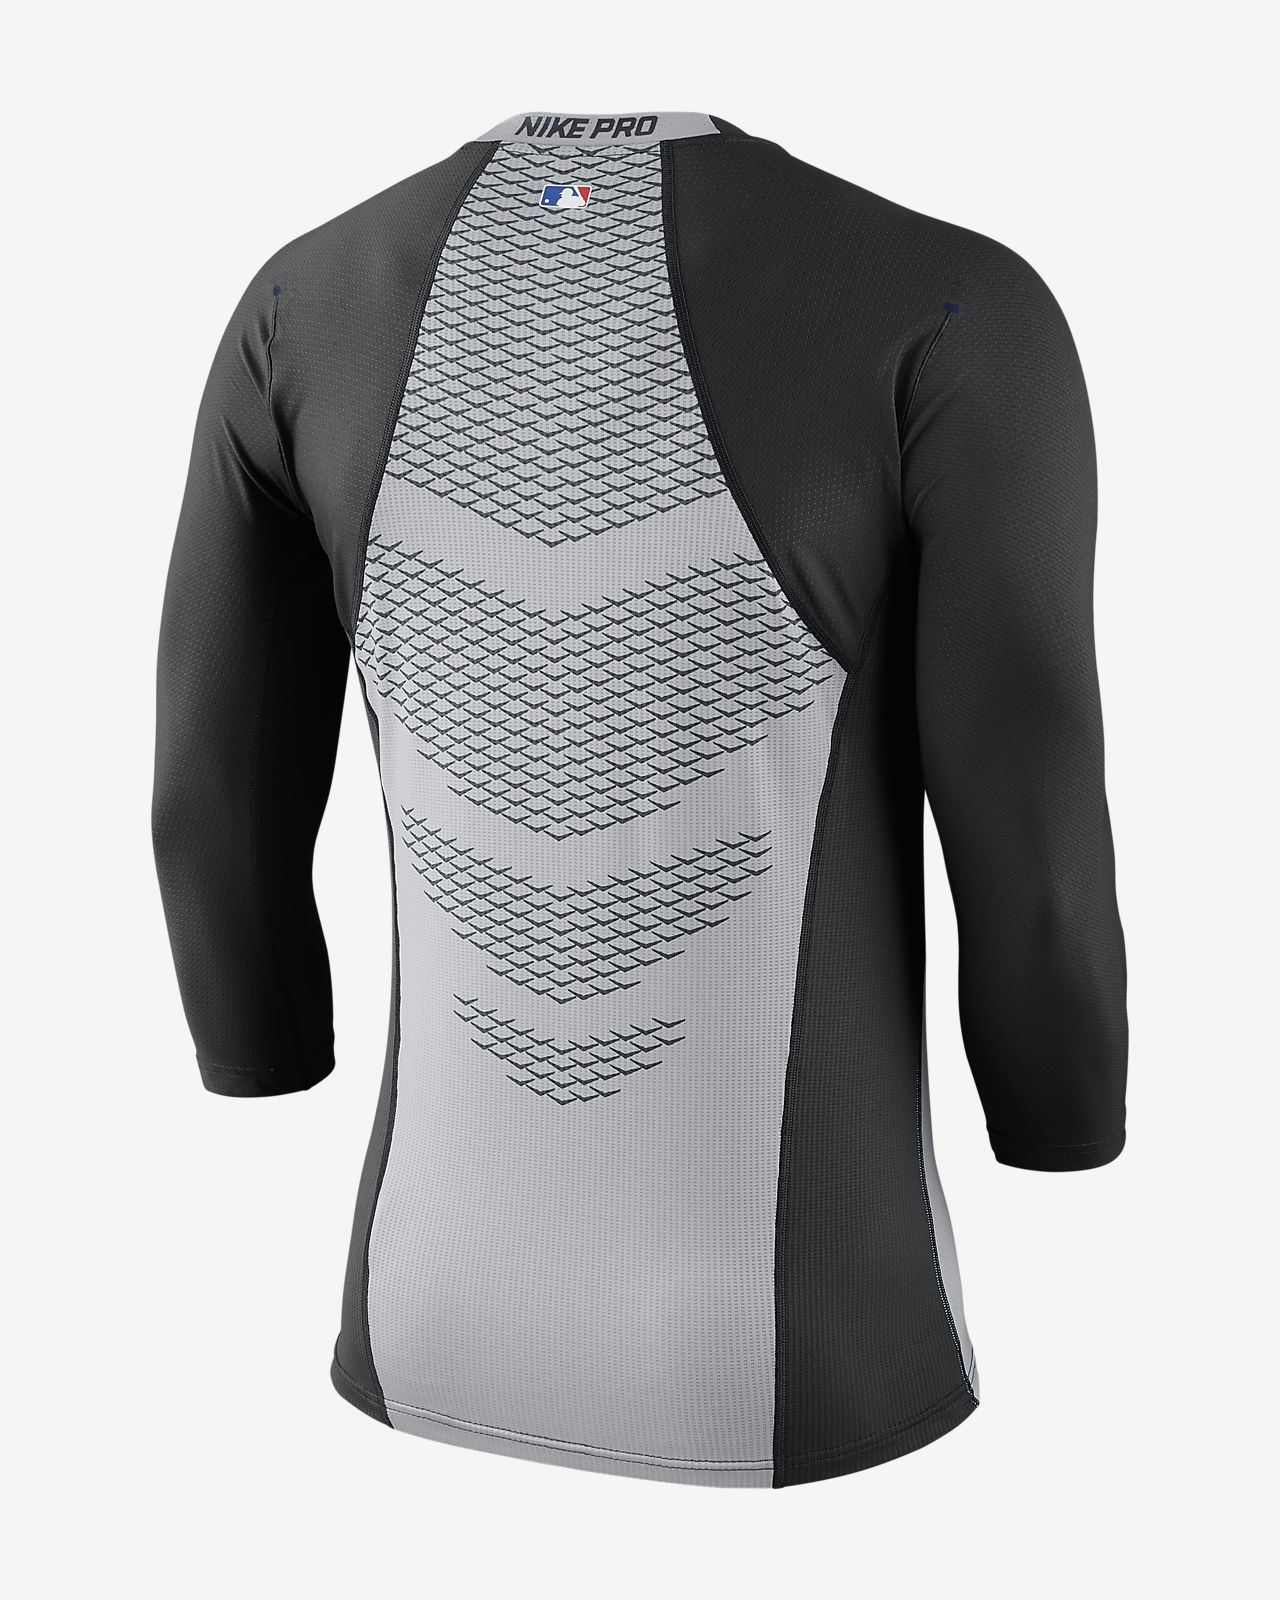 Nike Pro HyperCool (MLB Giants) Men's 3/4 Sleeve Top